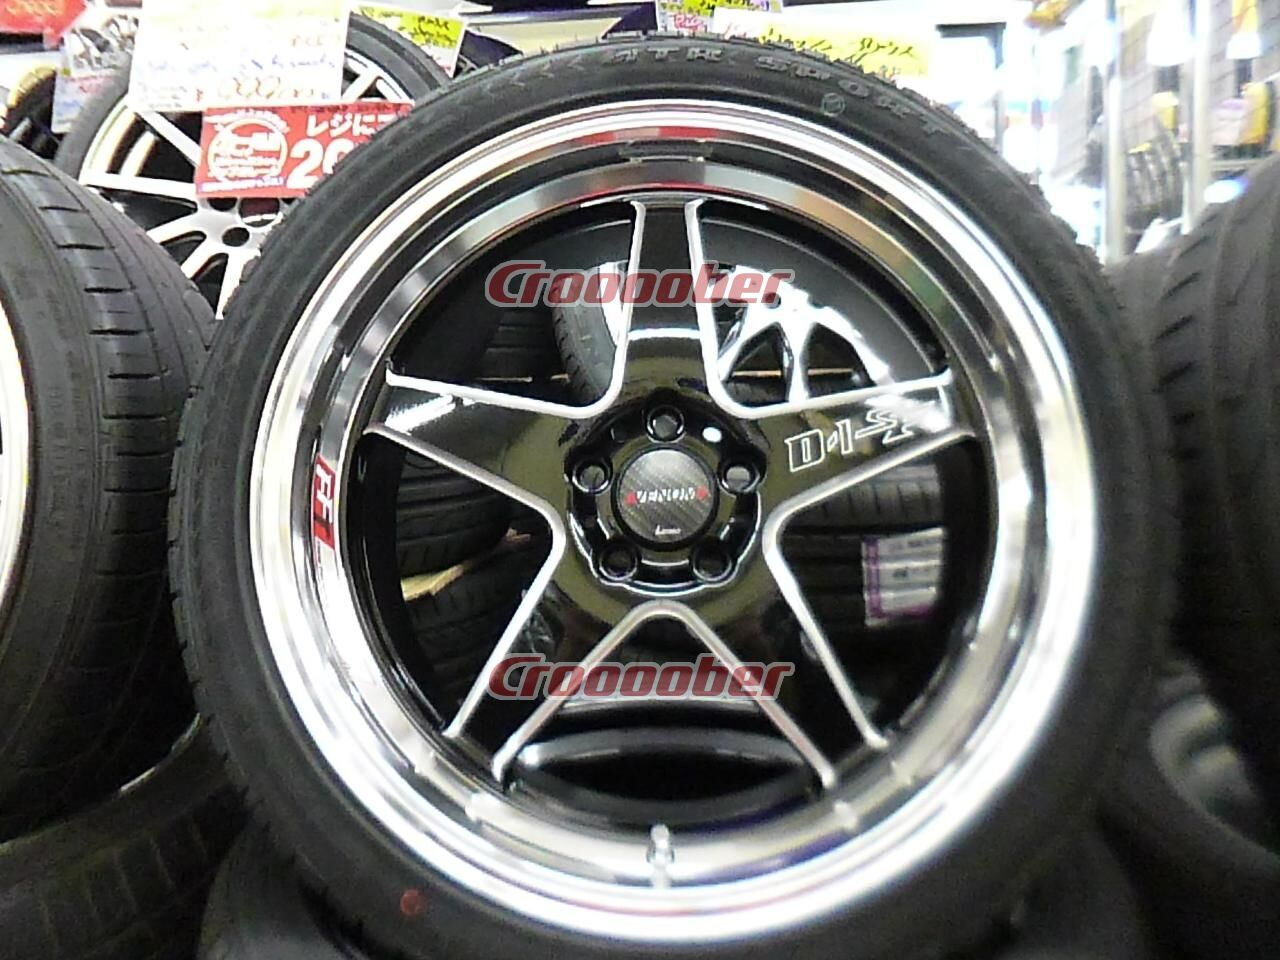 18 Inch Rims And Tires >> Lenso D1 Sf 18 Inch Rim Tire Sets For Sale Croooober